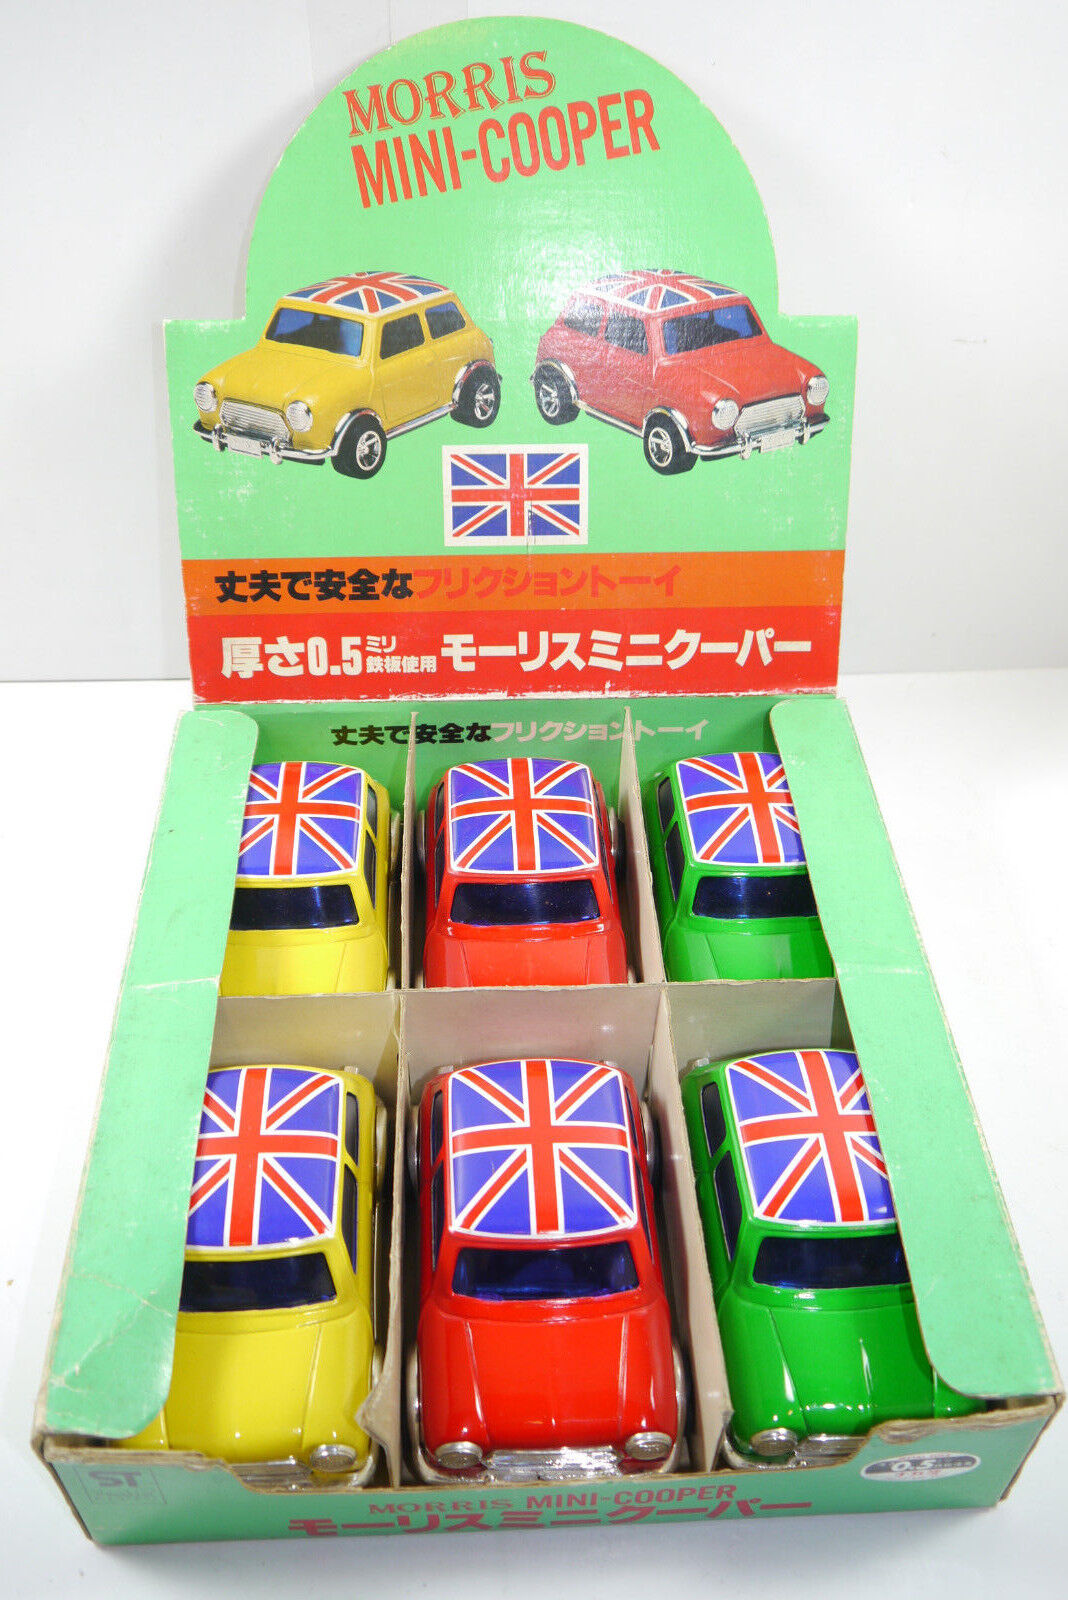 St Metal Toy Japan 6 Morris Mini Cooper in Sales Display Each Approx. 13cm (F12)